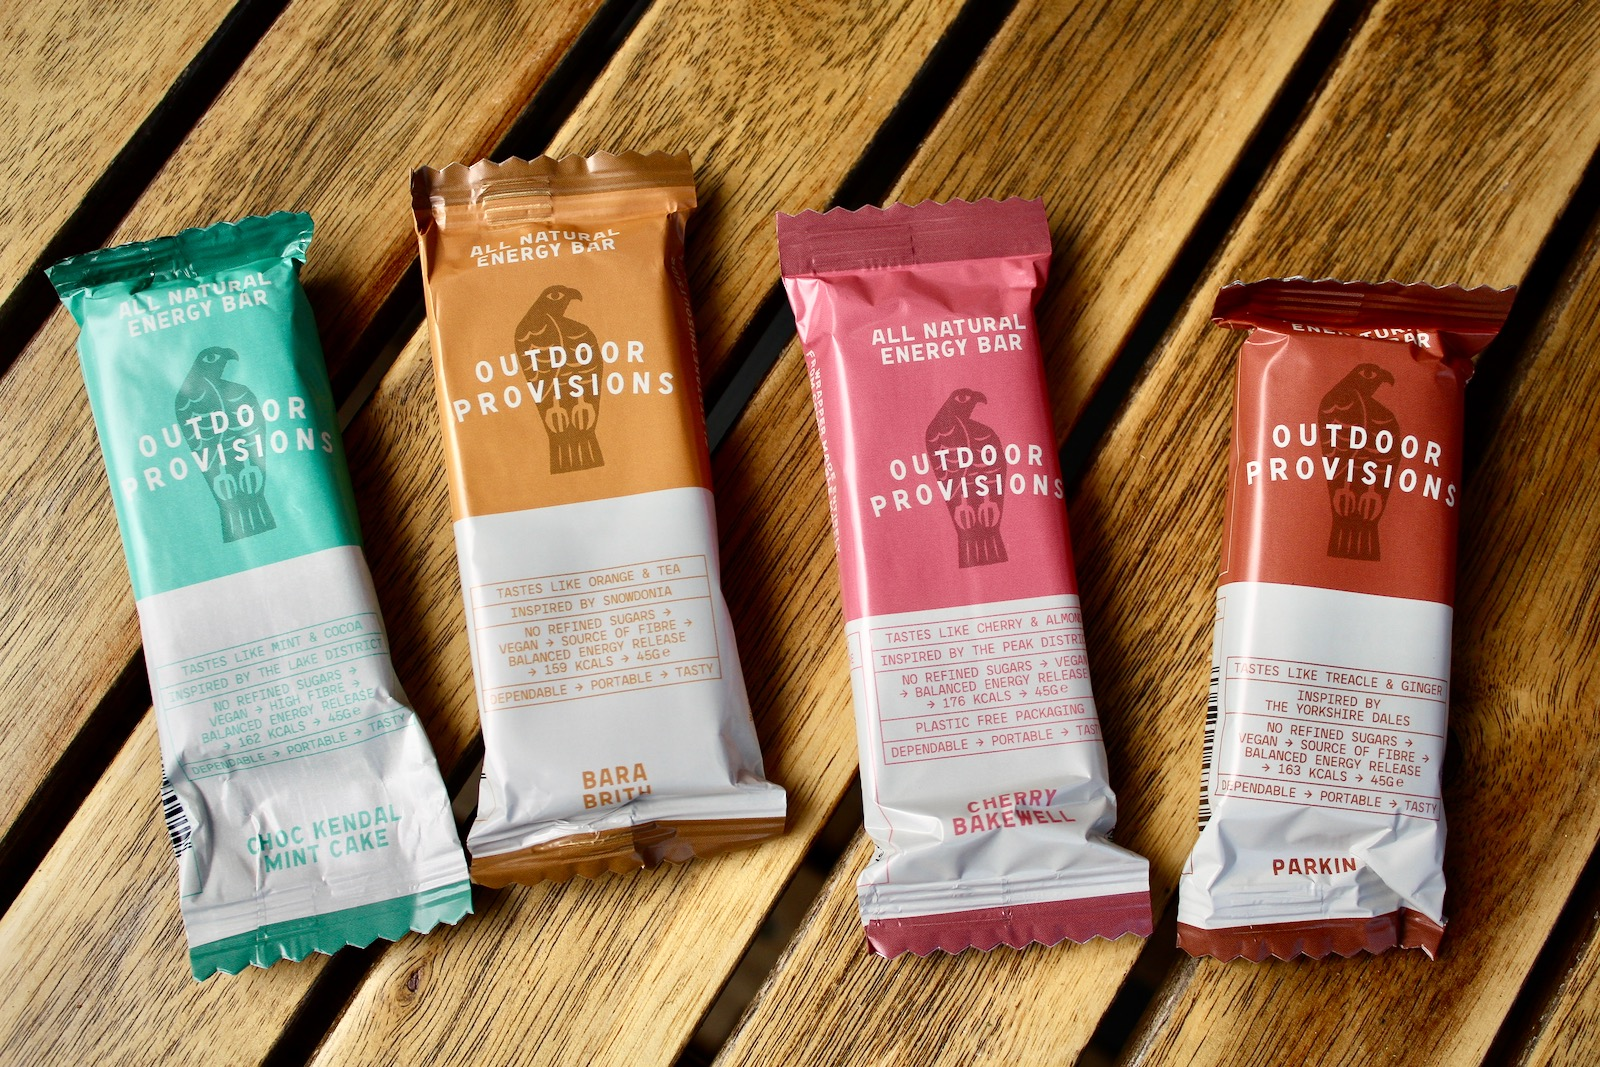 Outdoor Provisions Energy Bars